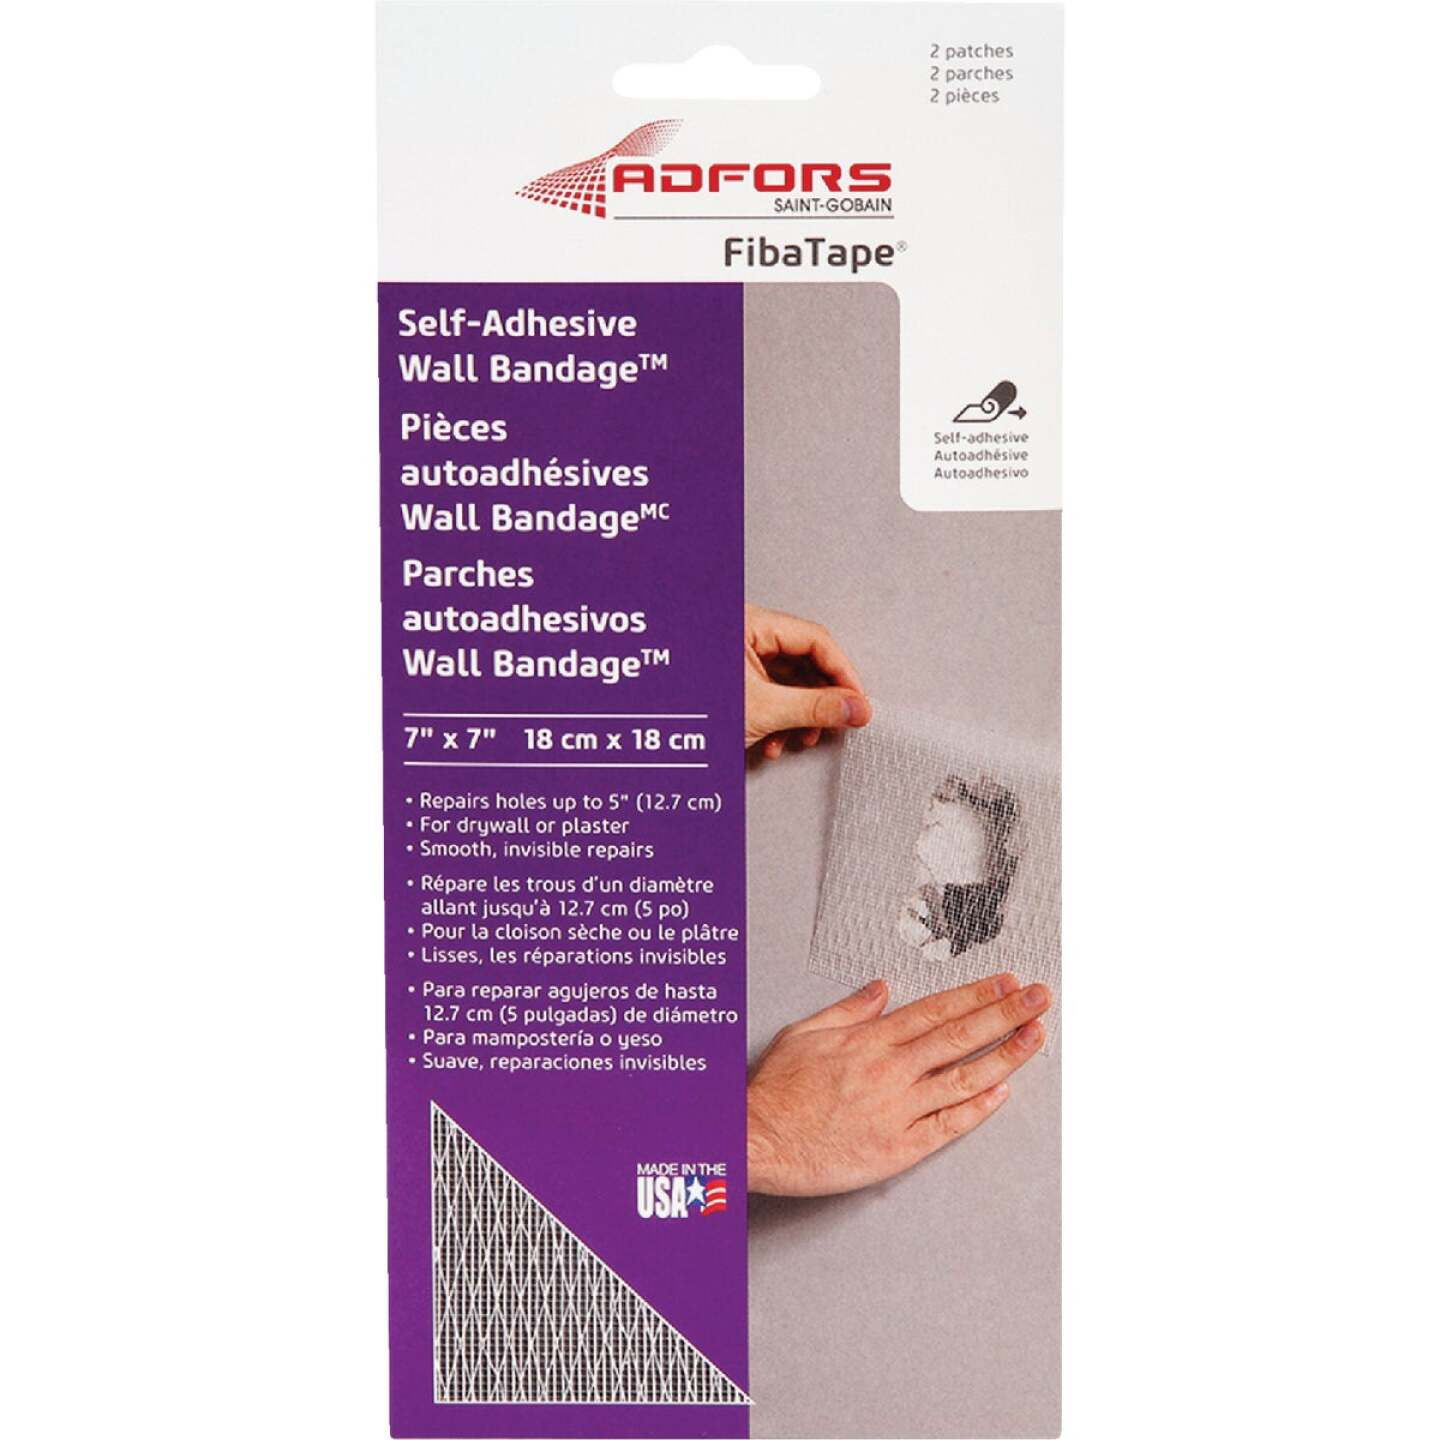 FibaTape Wall Bandage 7 In. x 7 In. Self-Adhesive Drywall Patch (2-Pack) Image 1